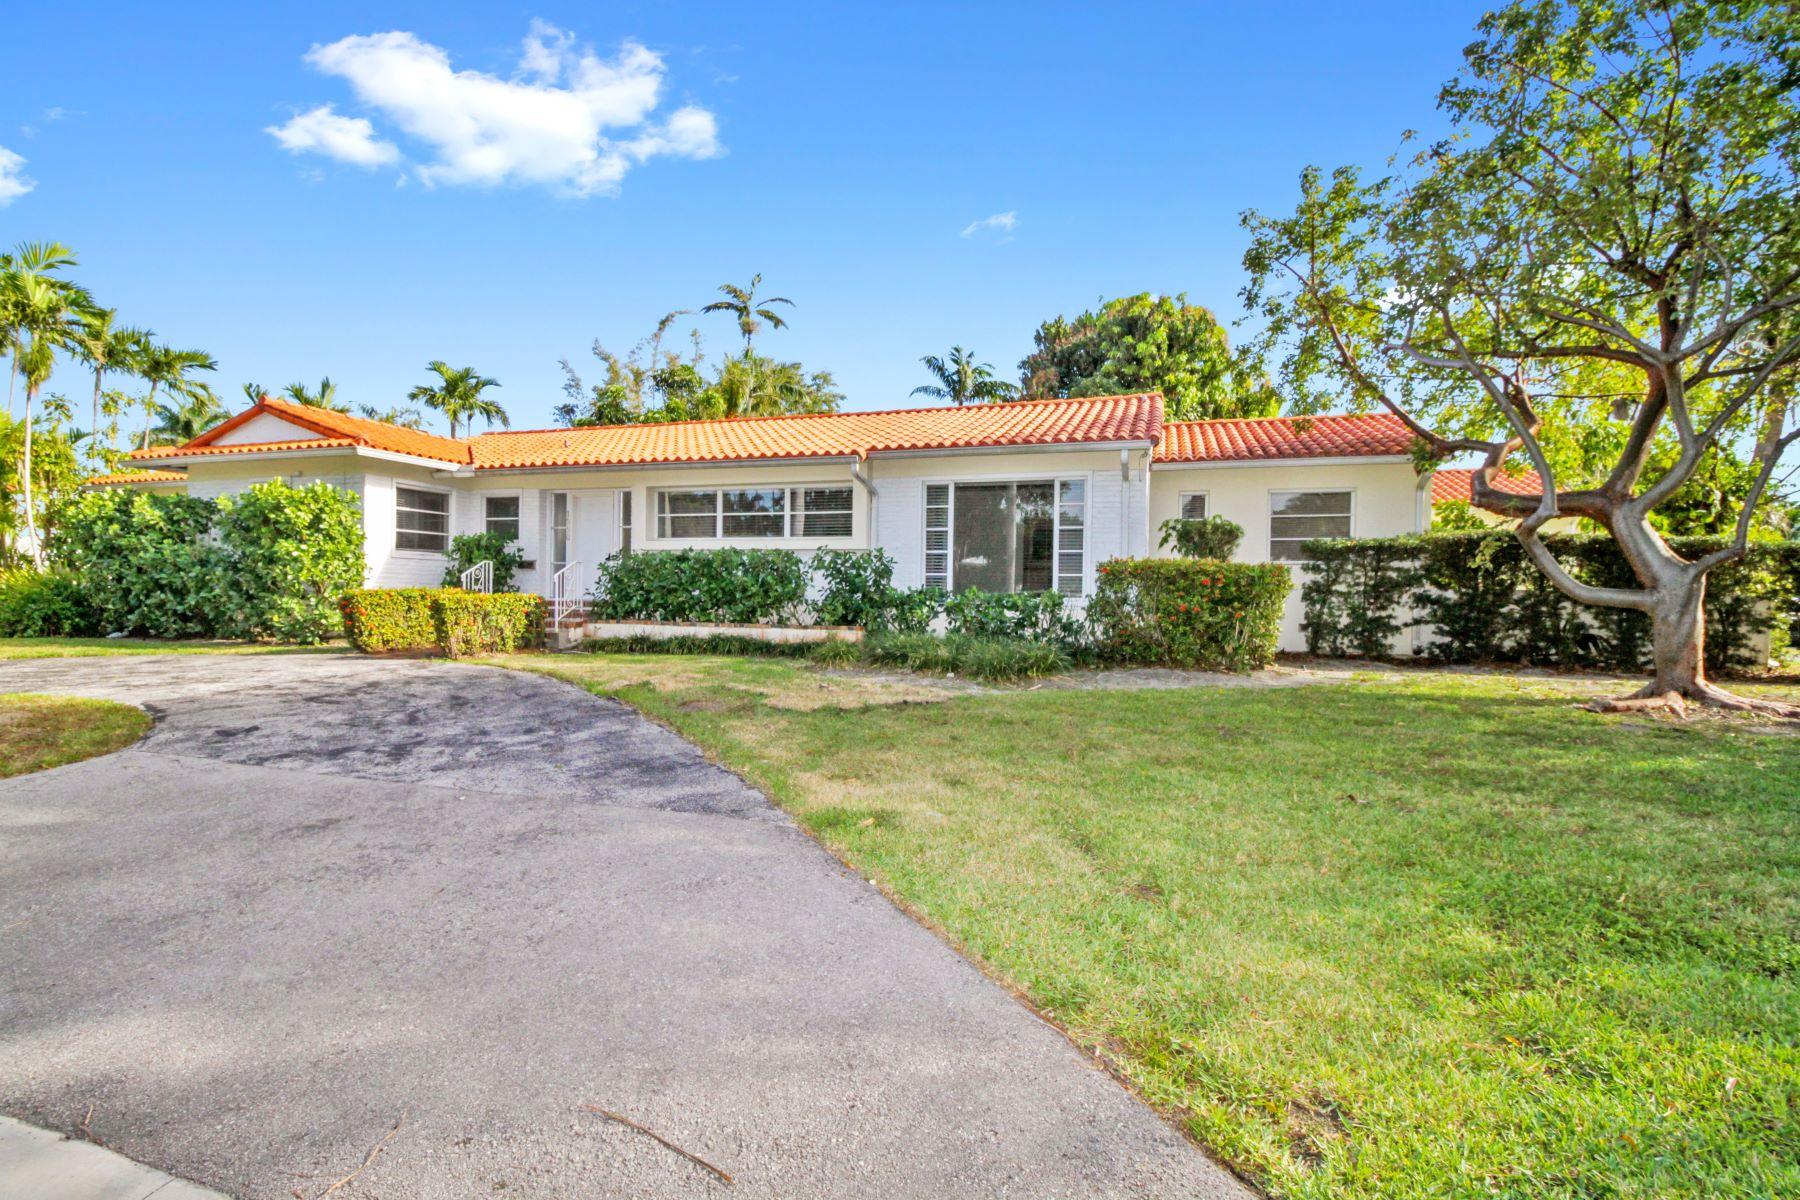 Single Family Home for Sale at 1550 N View Dr Miami Beach, Florida, 33140 United States